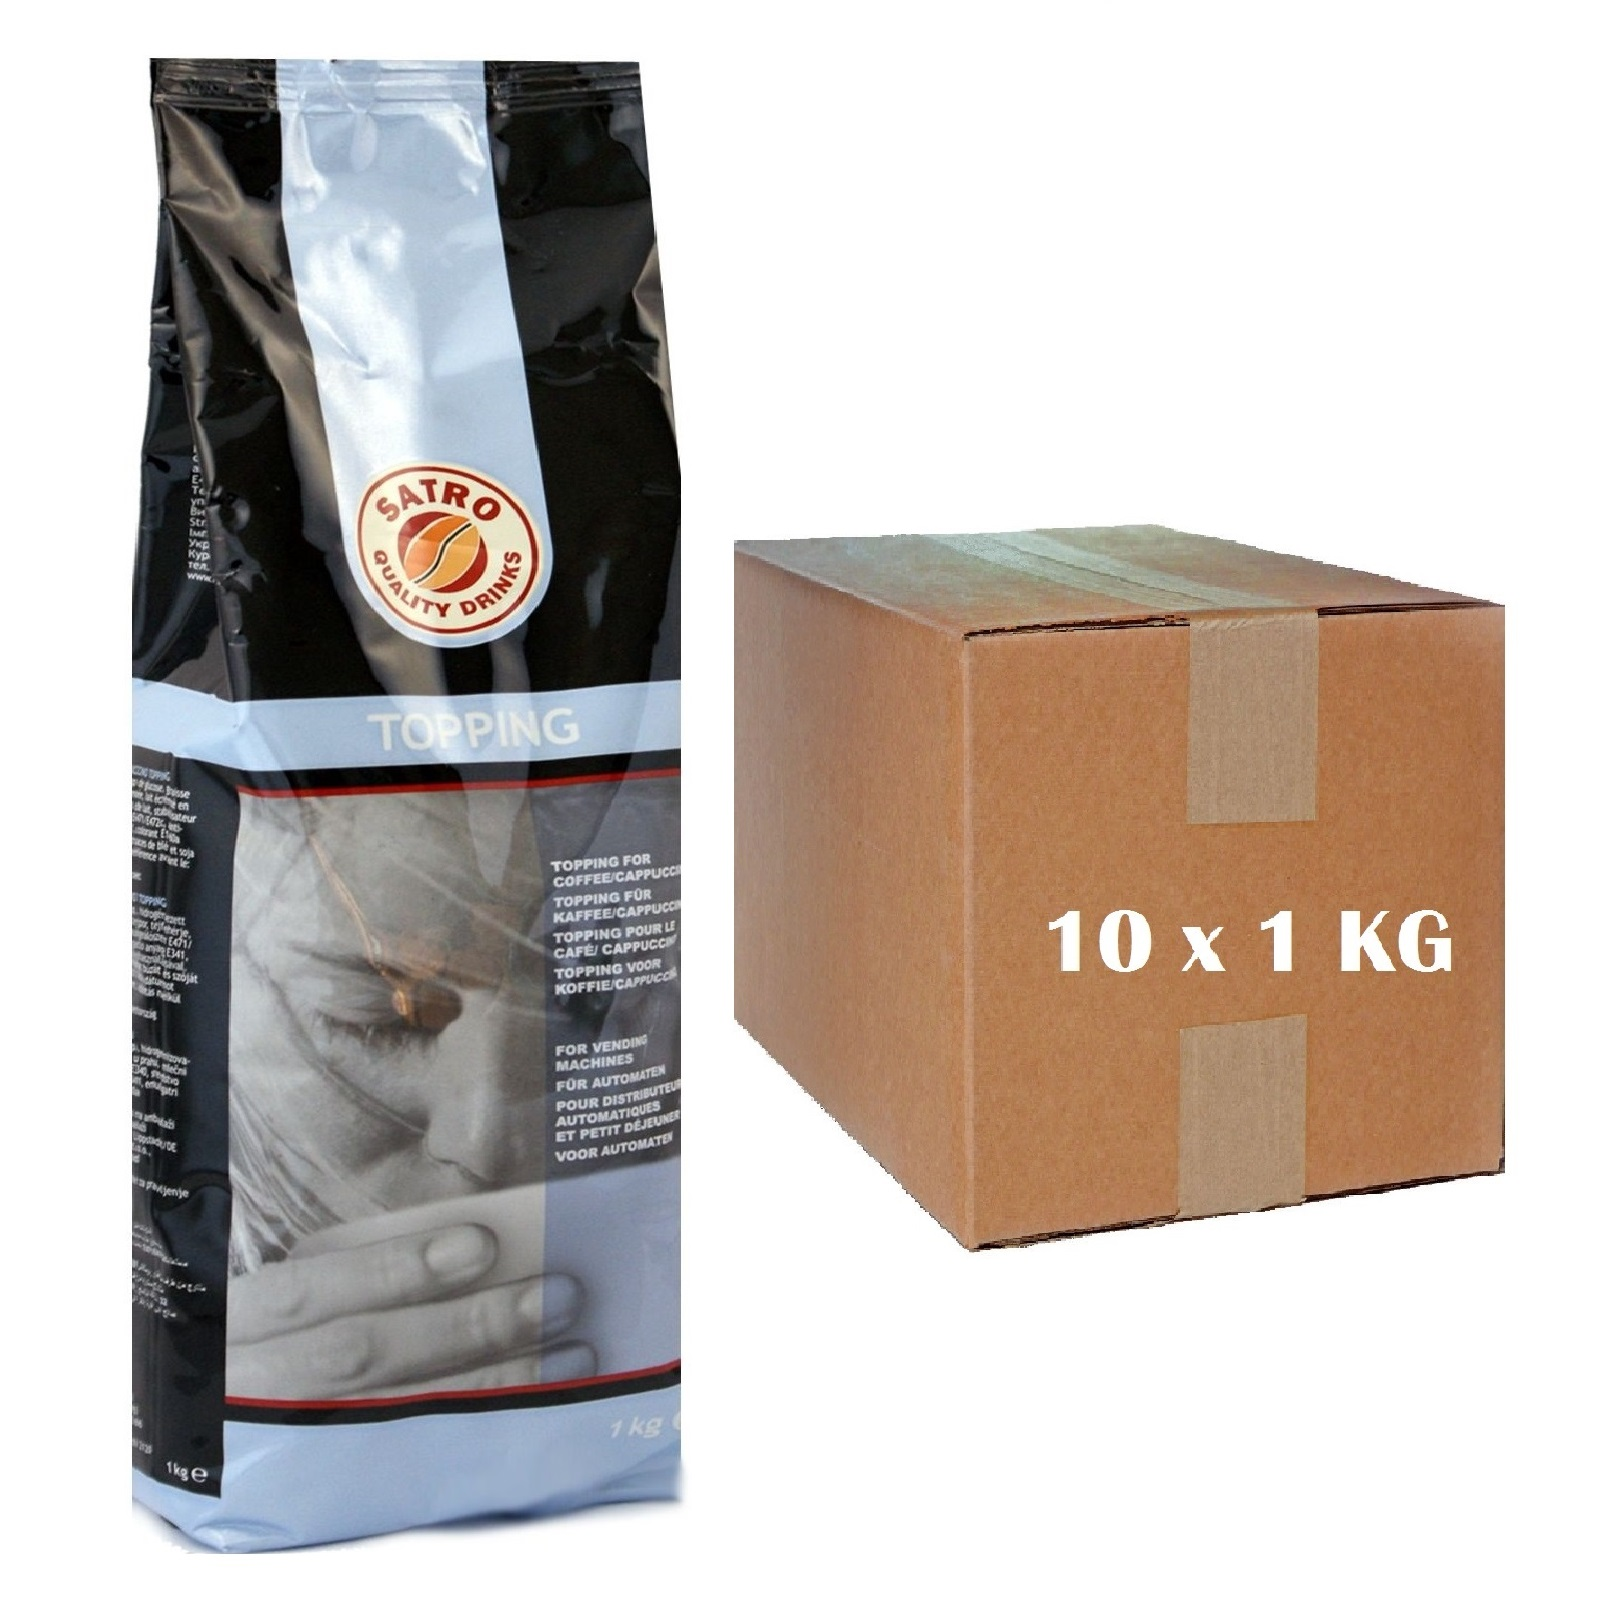 Lavazza Cappuccino Topping Satro CW 07 Milchtopping 10 x 1Kg